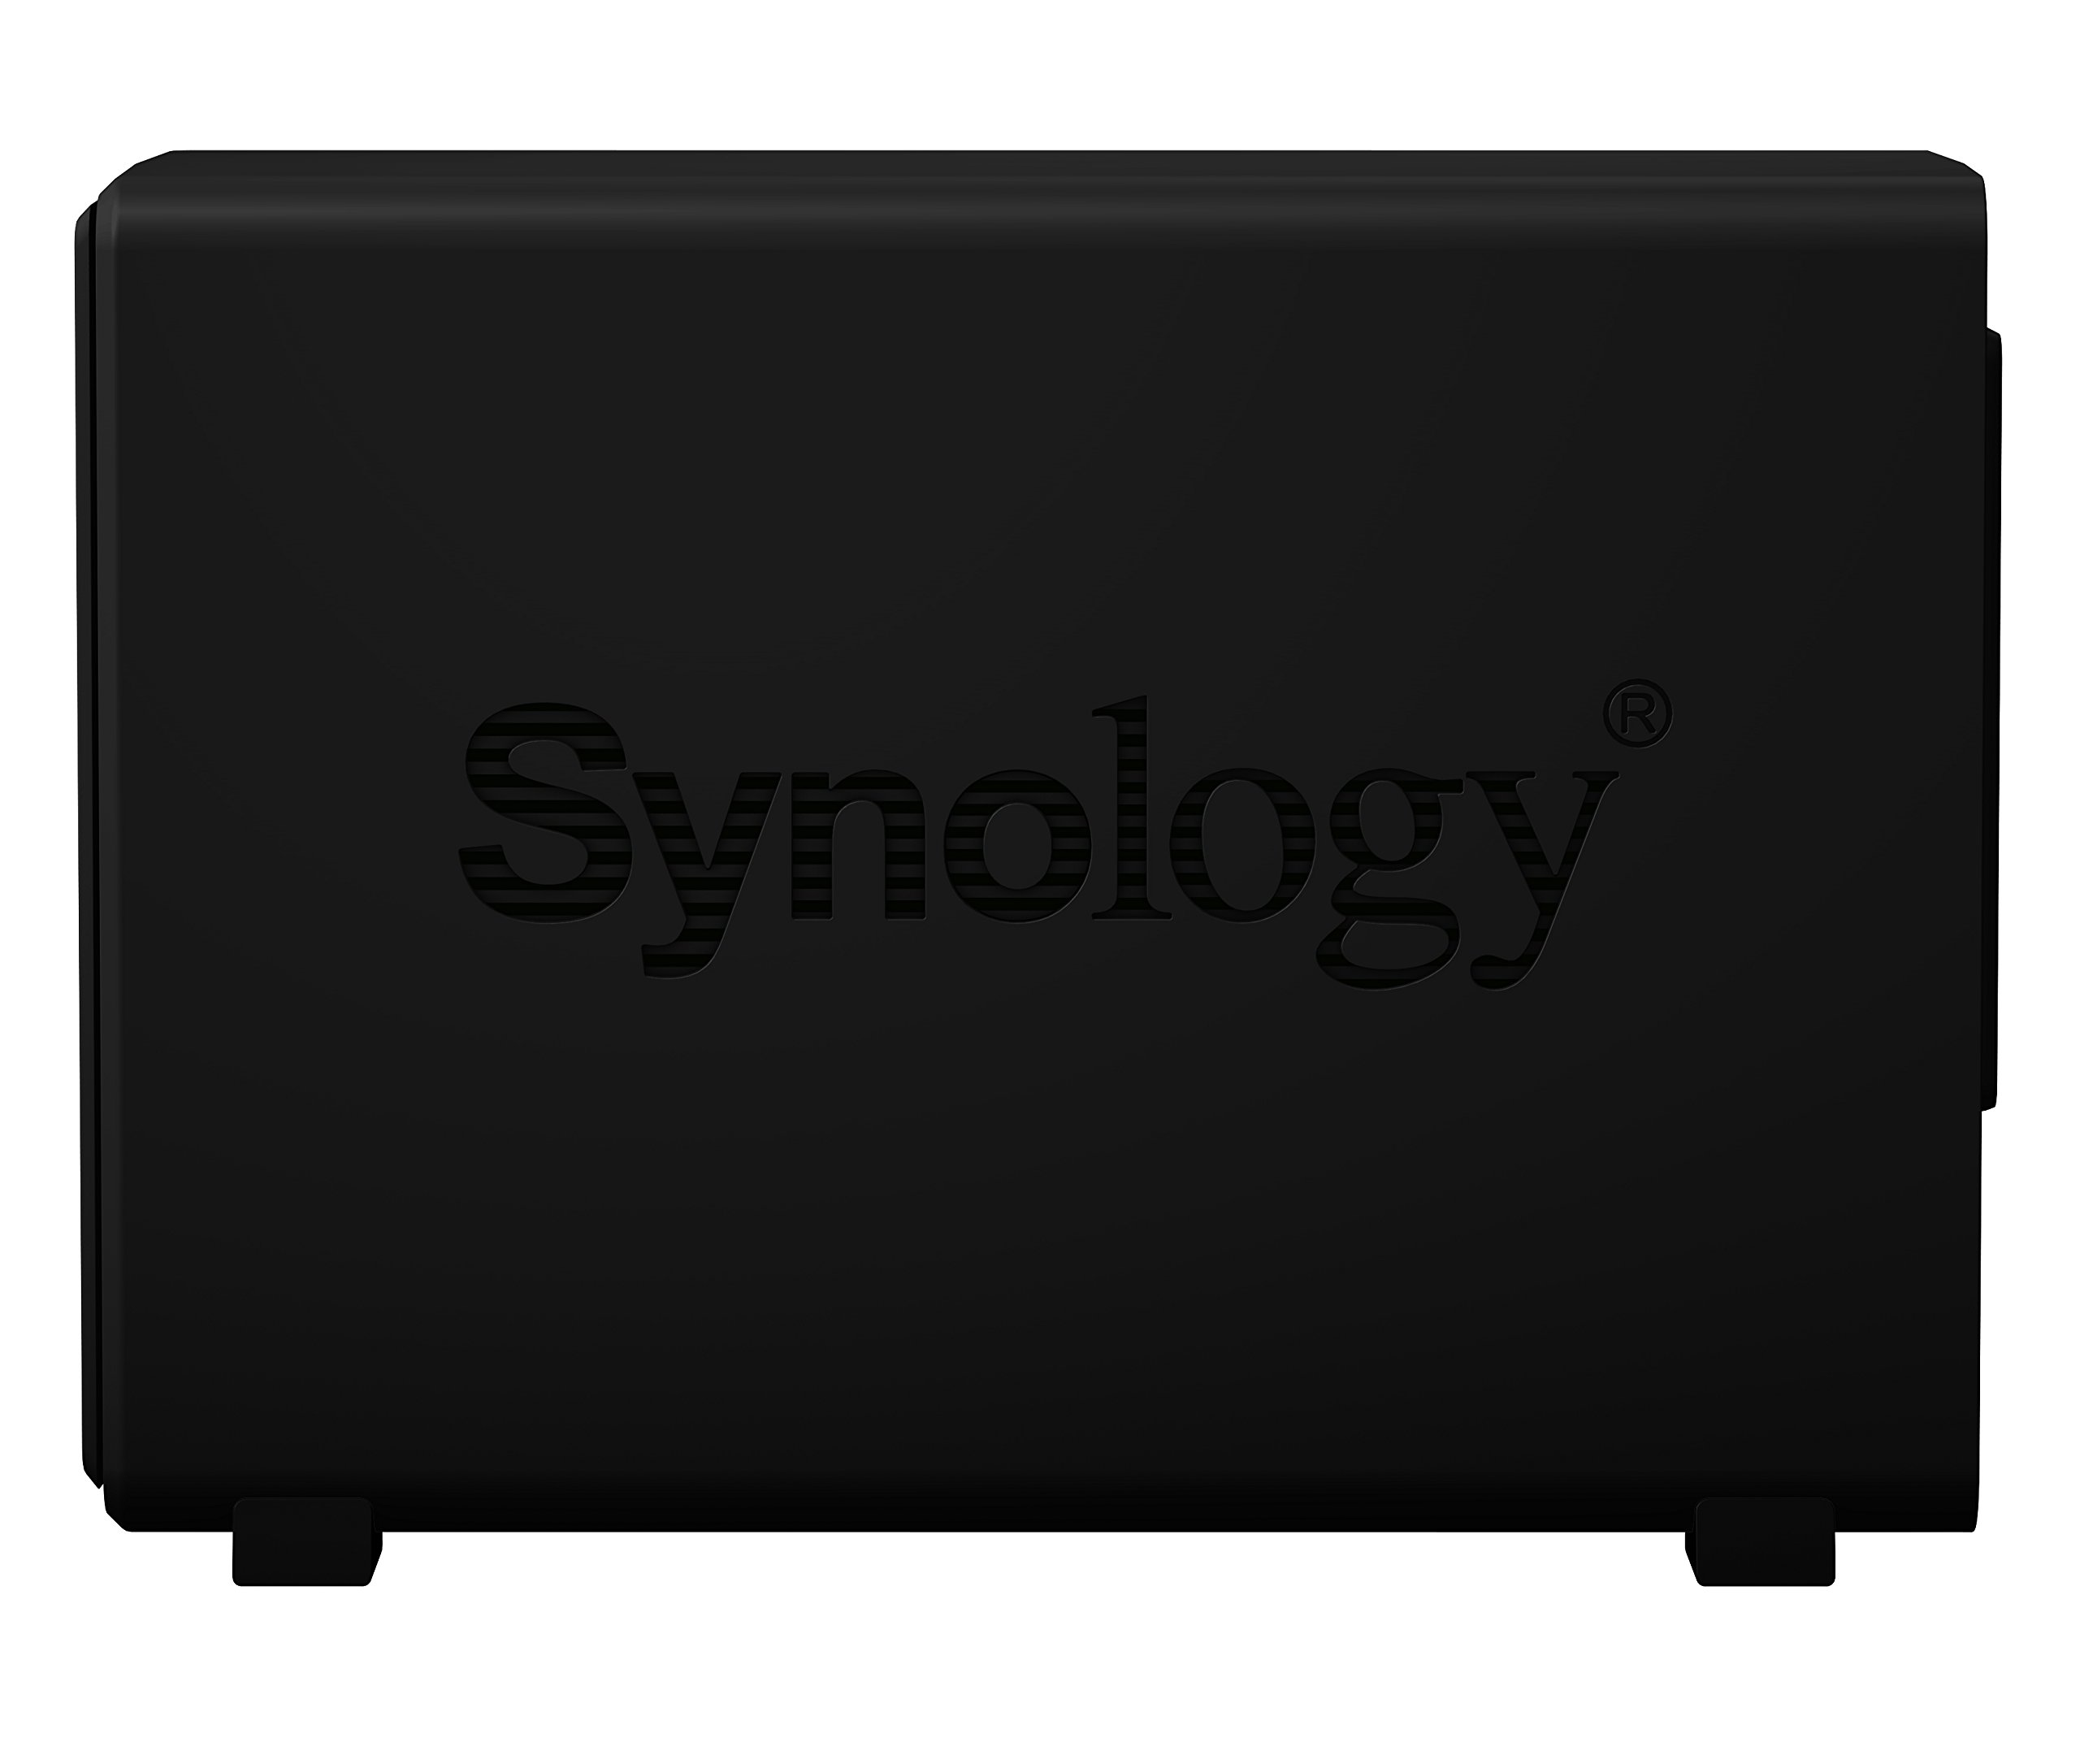 Synology 2 bay NAS Disk Station, DS218play (Diskless) 5 2-bay NAS with optimal multimedia solution for home users 4K video transcoding on the fly with 10 bit H.265 codec support. Operating Temperature : 5°C to 40°C (40°F to 104°F), Storage Temperature : -20°C to 60°C (-5°F to 140°F) Up to 112 MB/s and 112 MB/s sequential reading and writing throughput, respectively